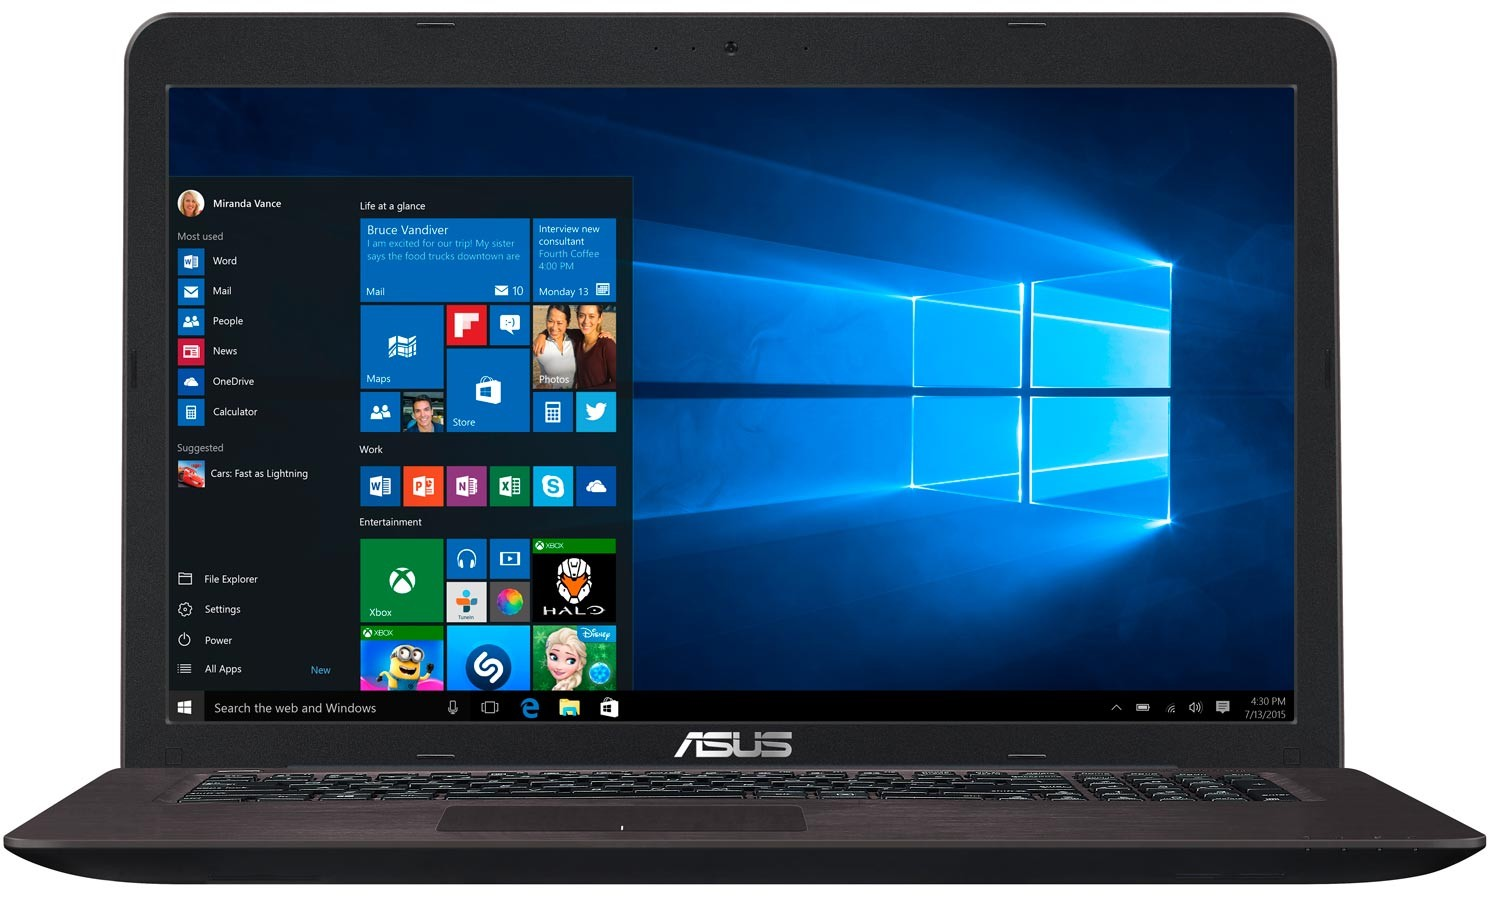 ASUS - X756UB-TY056T - 17.3 pouces - Intel Core i7 - Mémoire vive 8 Go - Disque dur 1 To - Windows 10